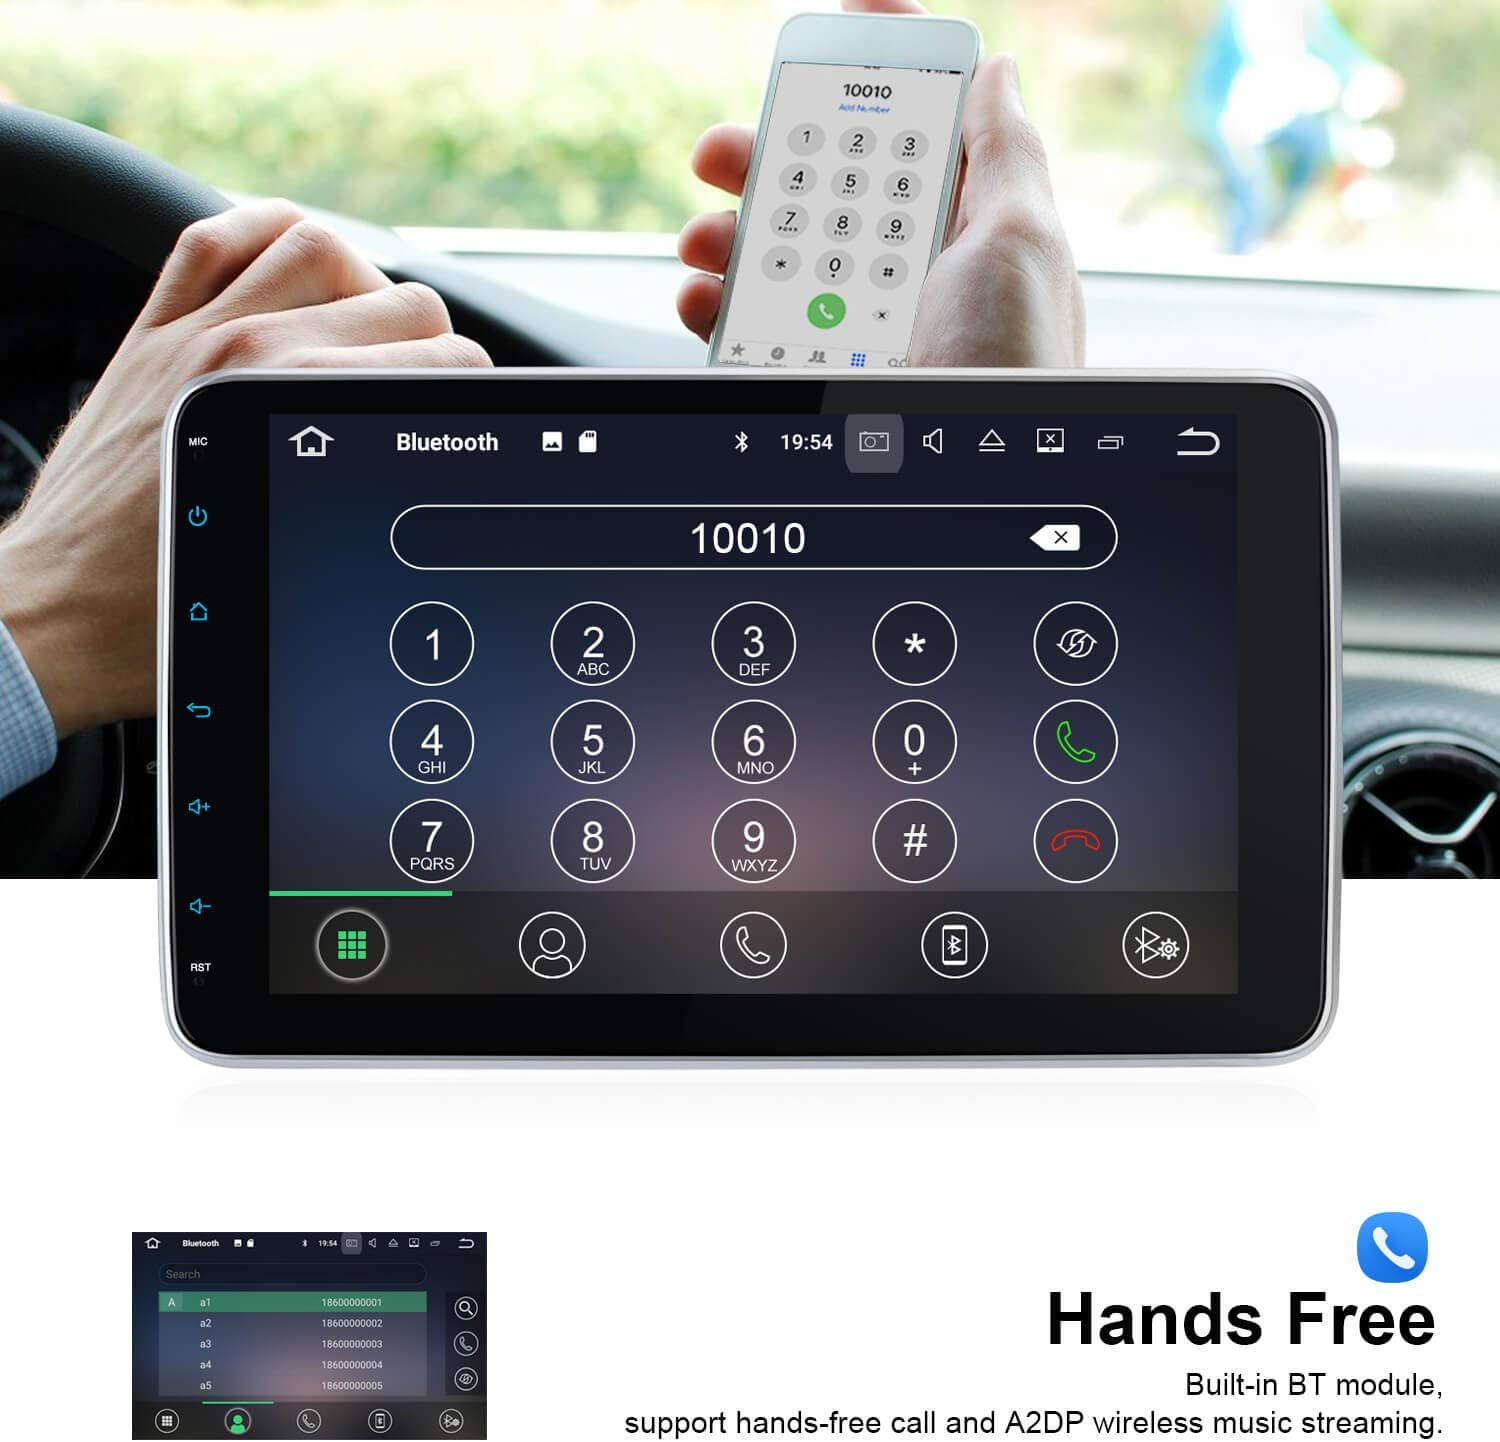 WiFi USB//SD GPS Support Android Auto Vanku Android 10 Car Stereo Double Din 10.1 Inch with 1s Fastboot Backup Camera Detachable Touchscreen OBD2